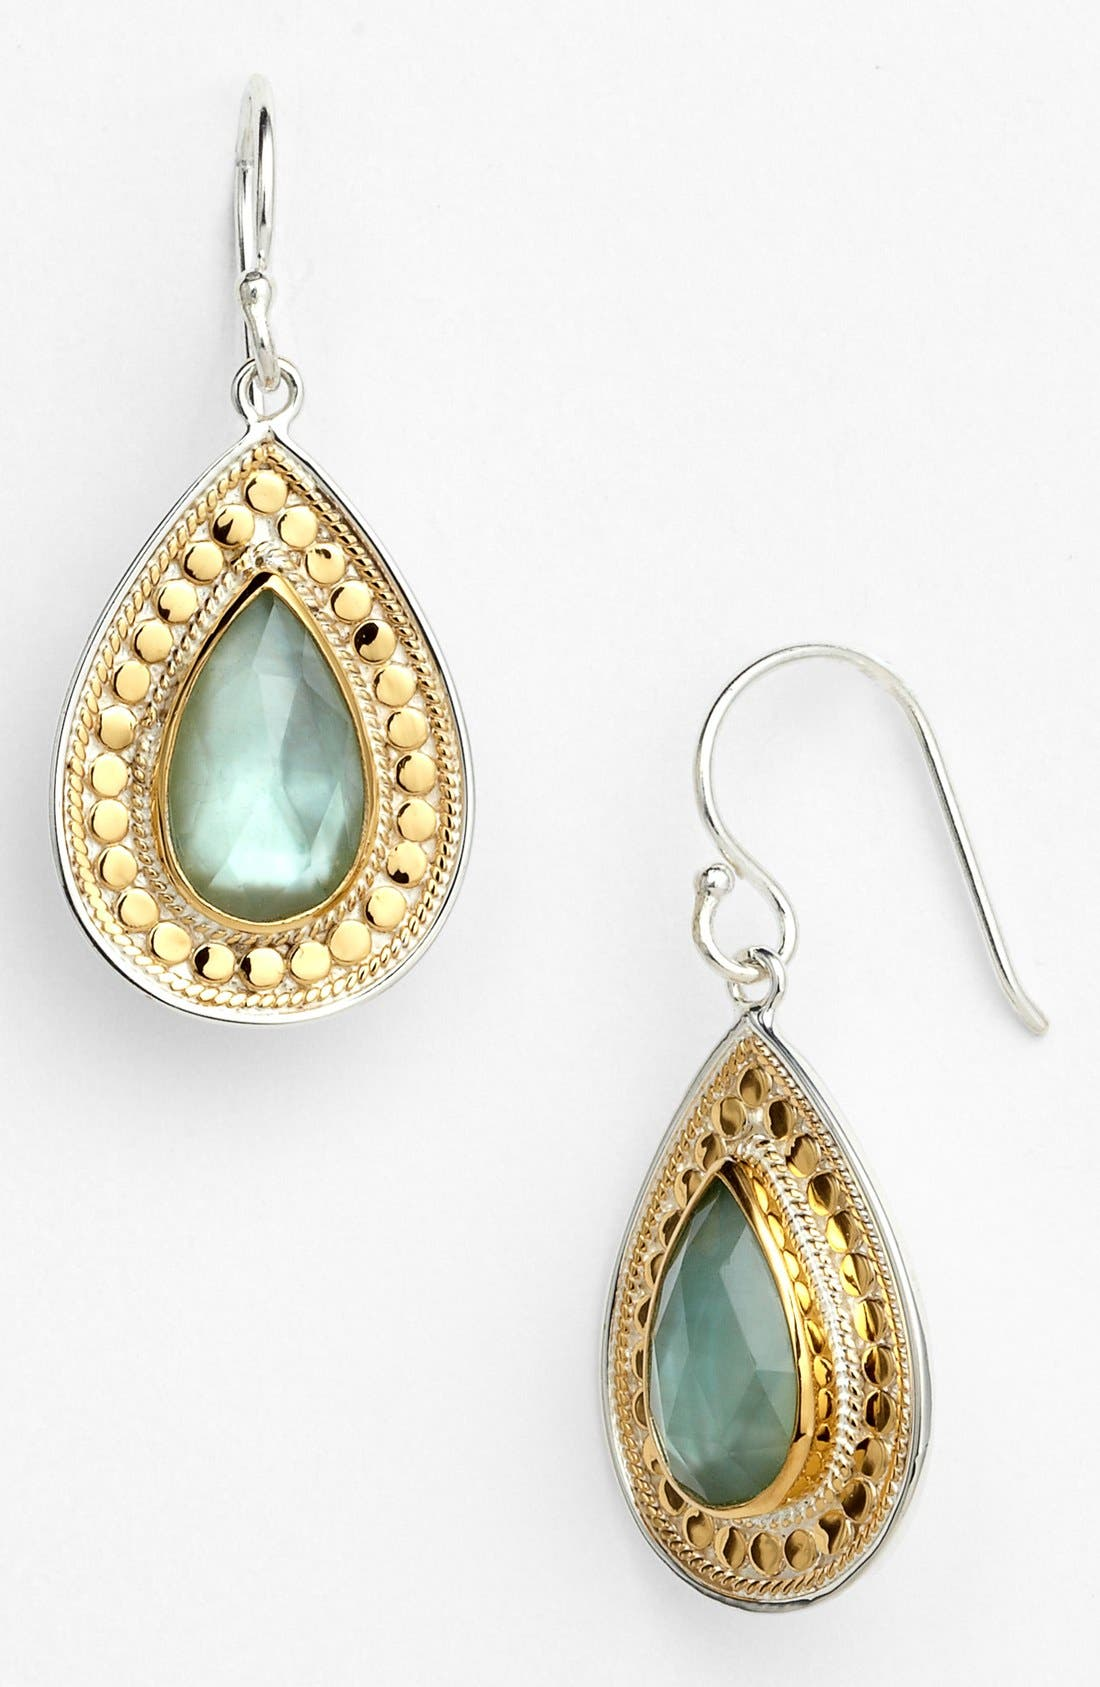 Alternate Image 1 Selected - Anna Beck 'Gili' Small Teardrop Earrings